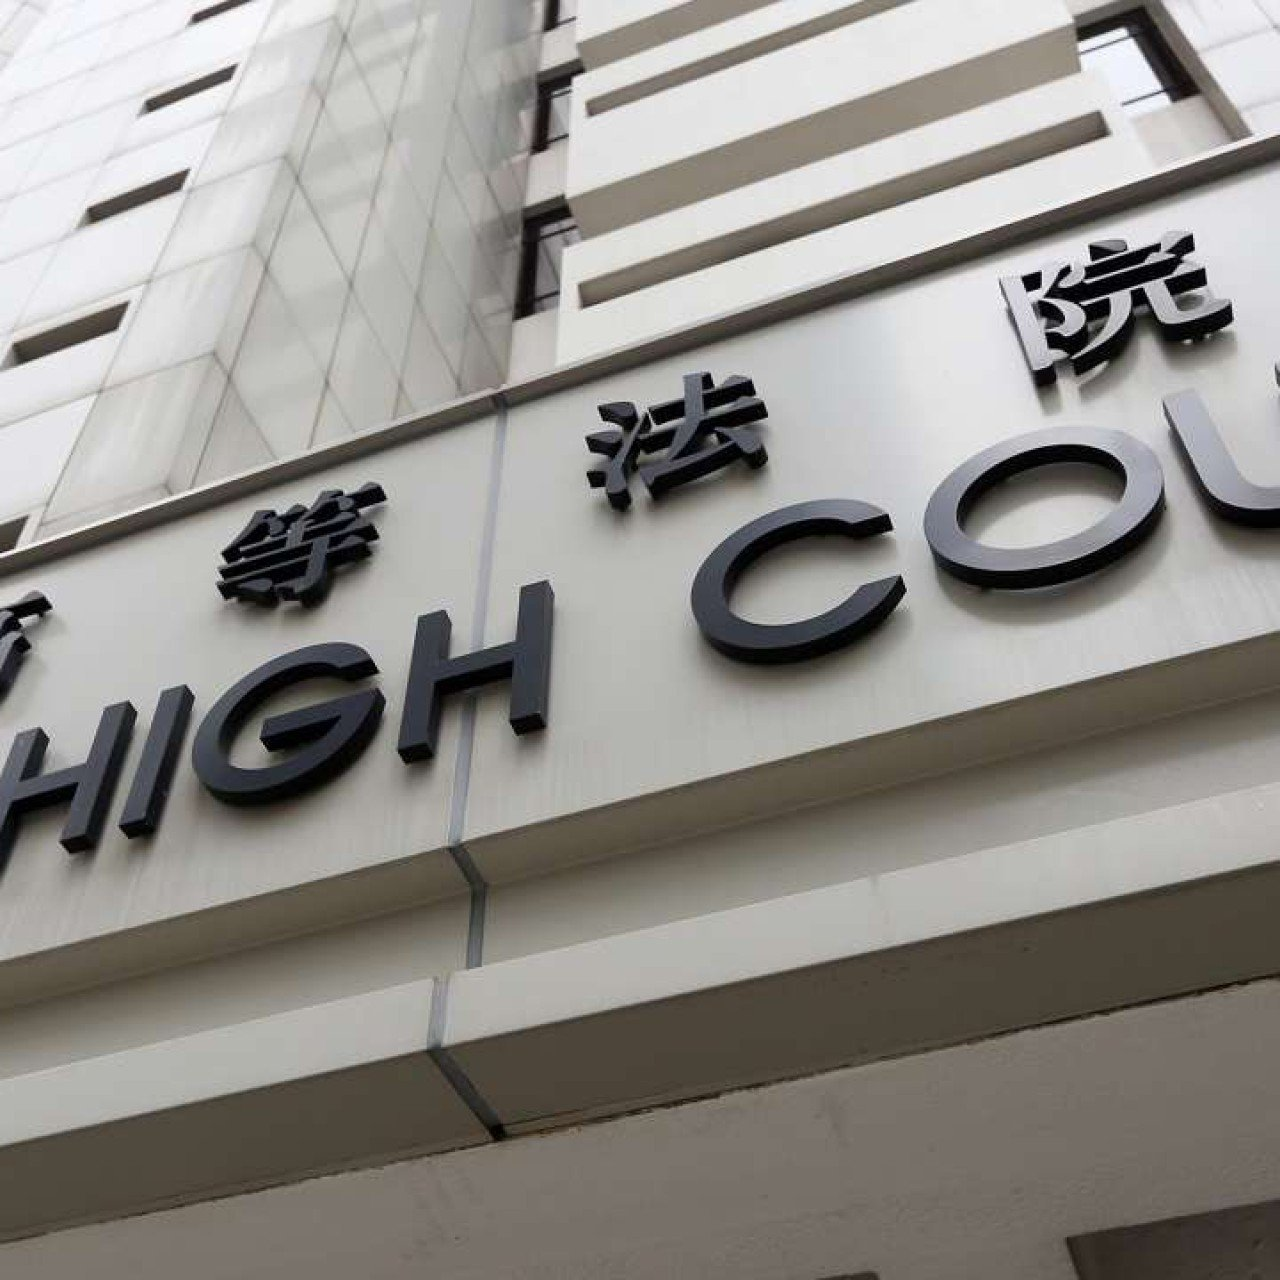 Kitchen worker allegedly hit man on head in fatal Hong Kong